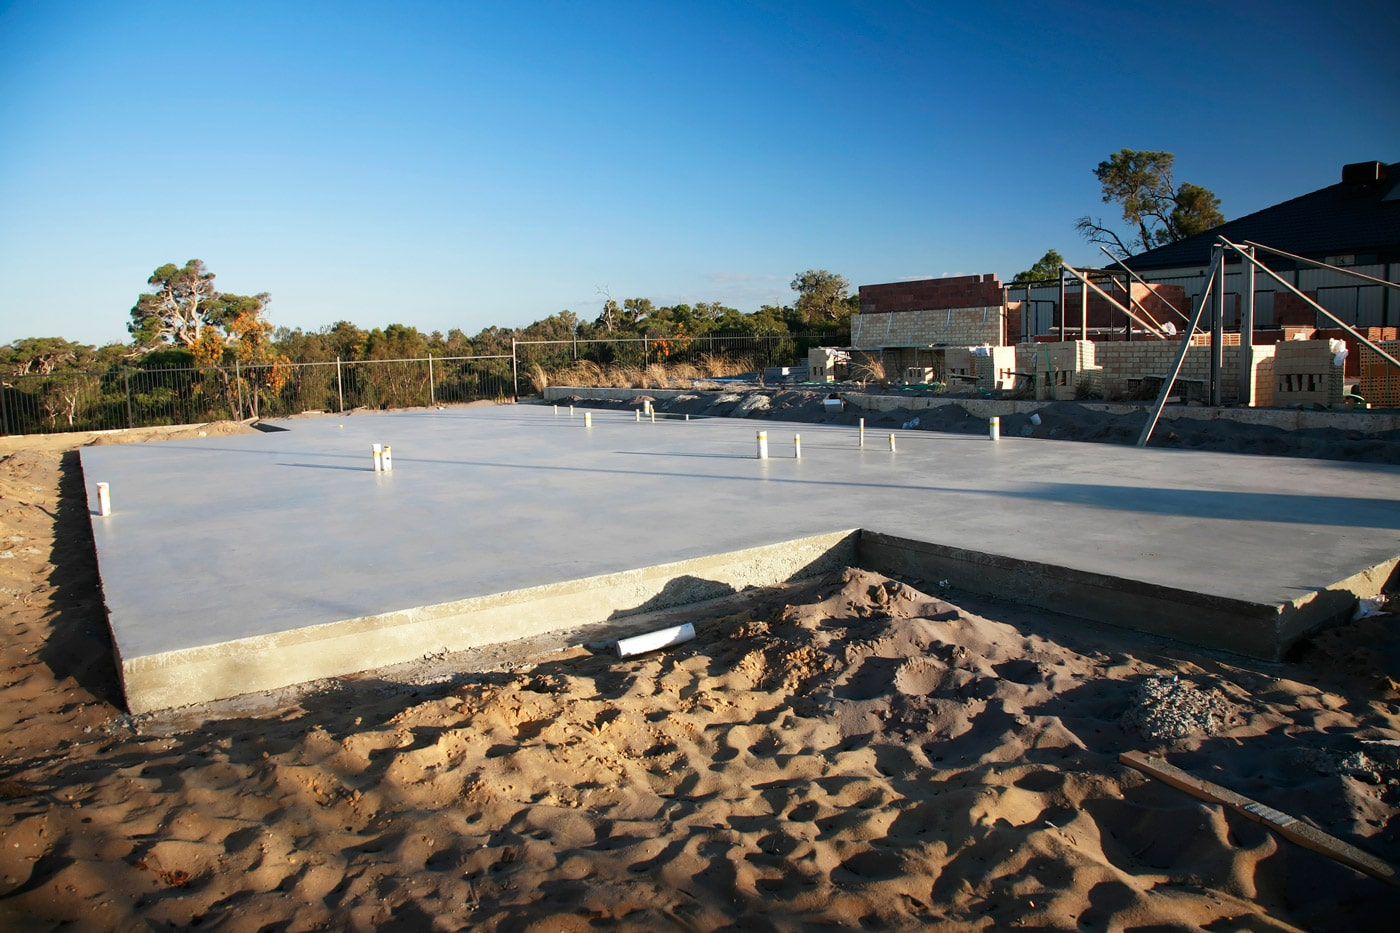 How much does a 40x60 concrete slab cost?